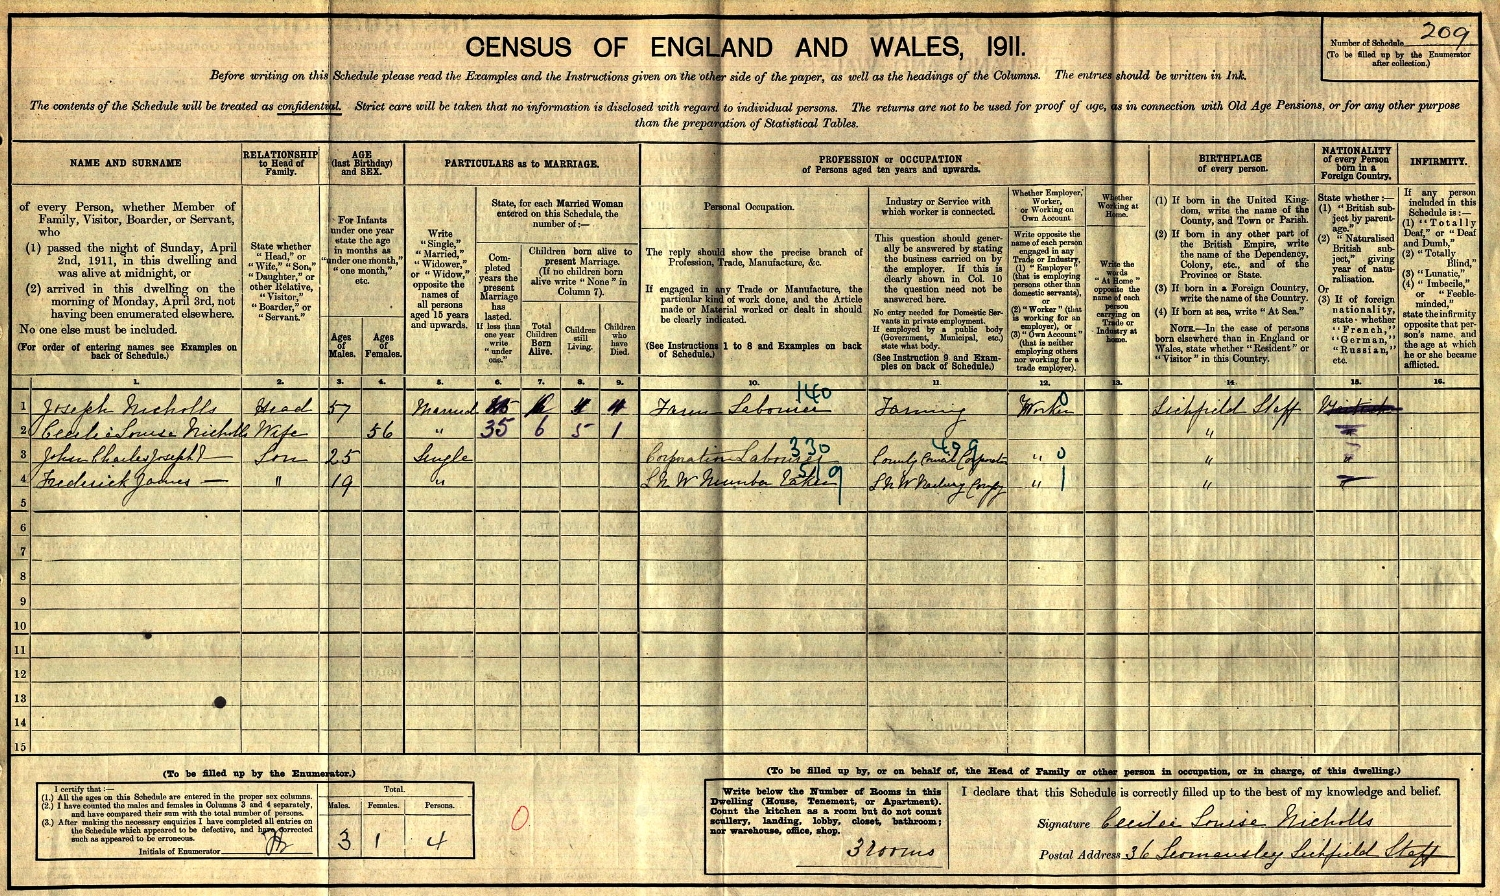 Extract from the 1911 census showing the family of Joseph and Cecilia Nicholls.